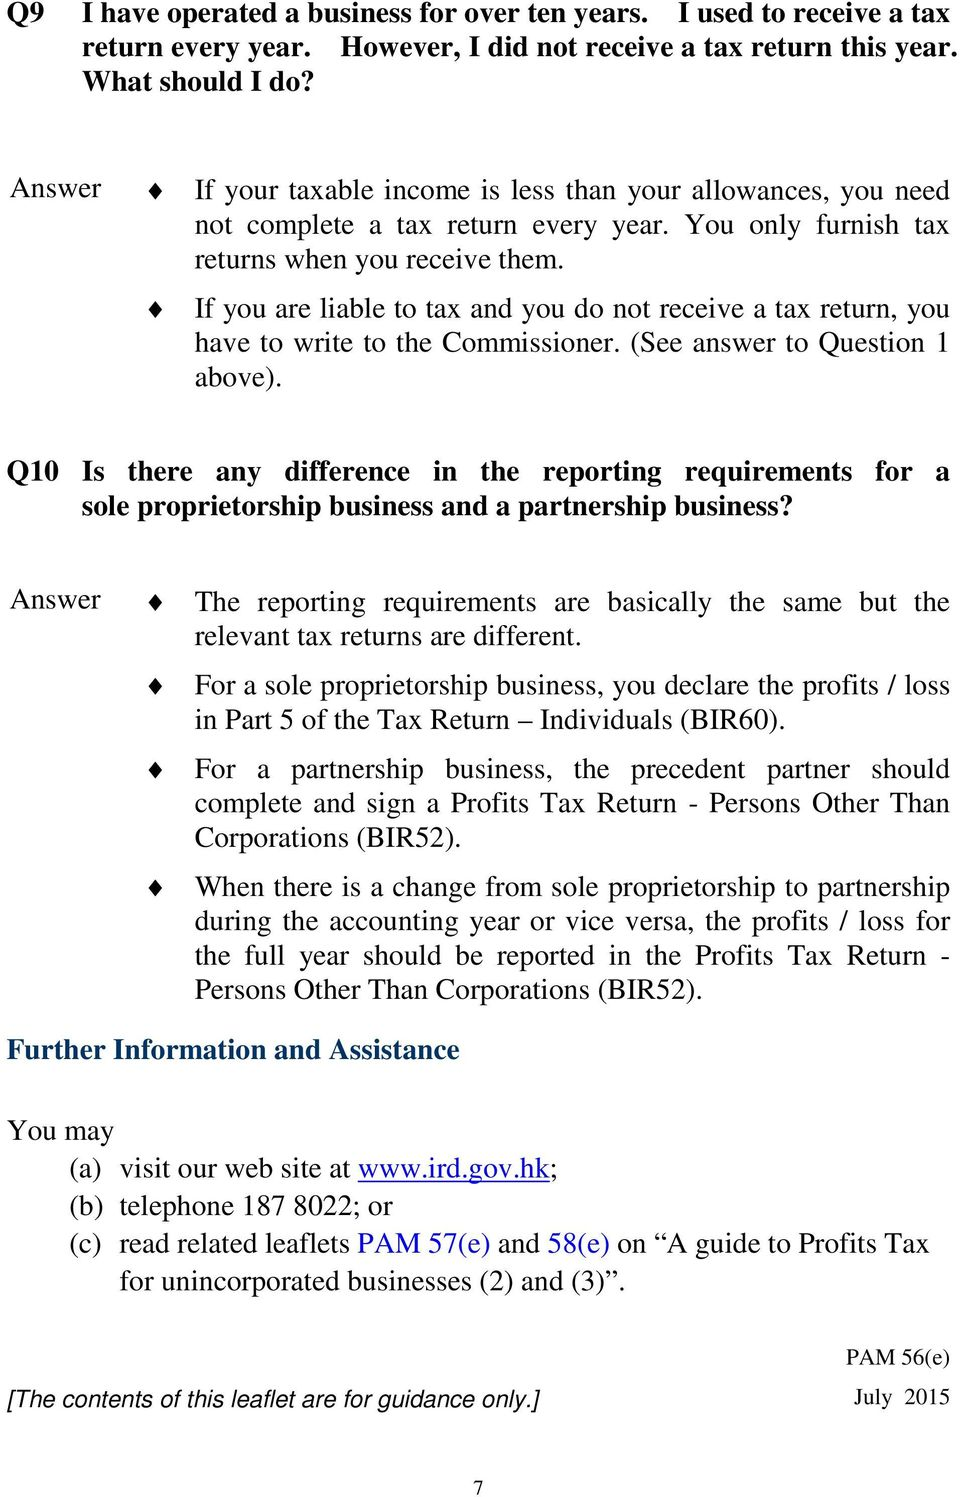 If you are liable to tax and you do not receive a tax return, you have to write to the Commissioner. (See answer to Question 1 above).